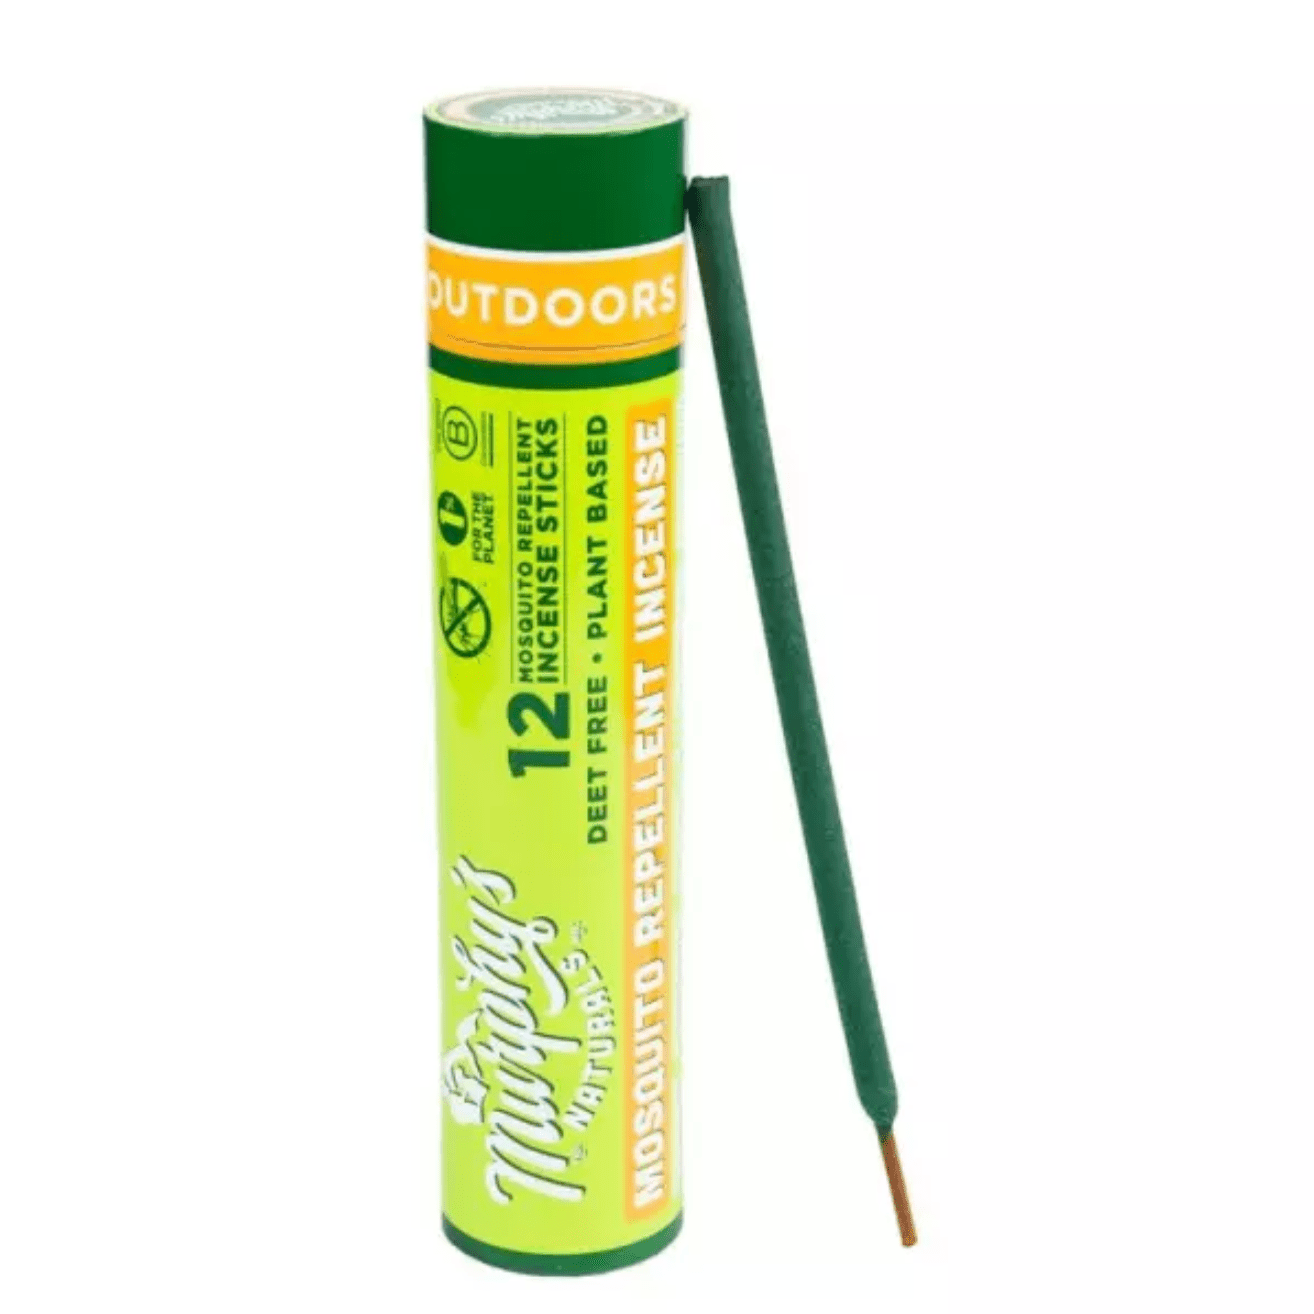 Murphy's Naturals mosquito repellant incense